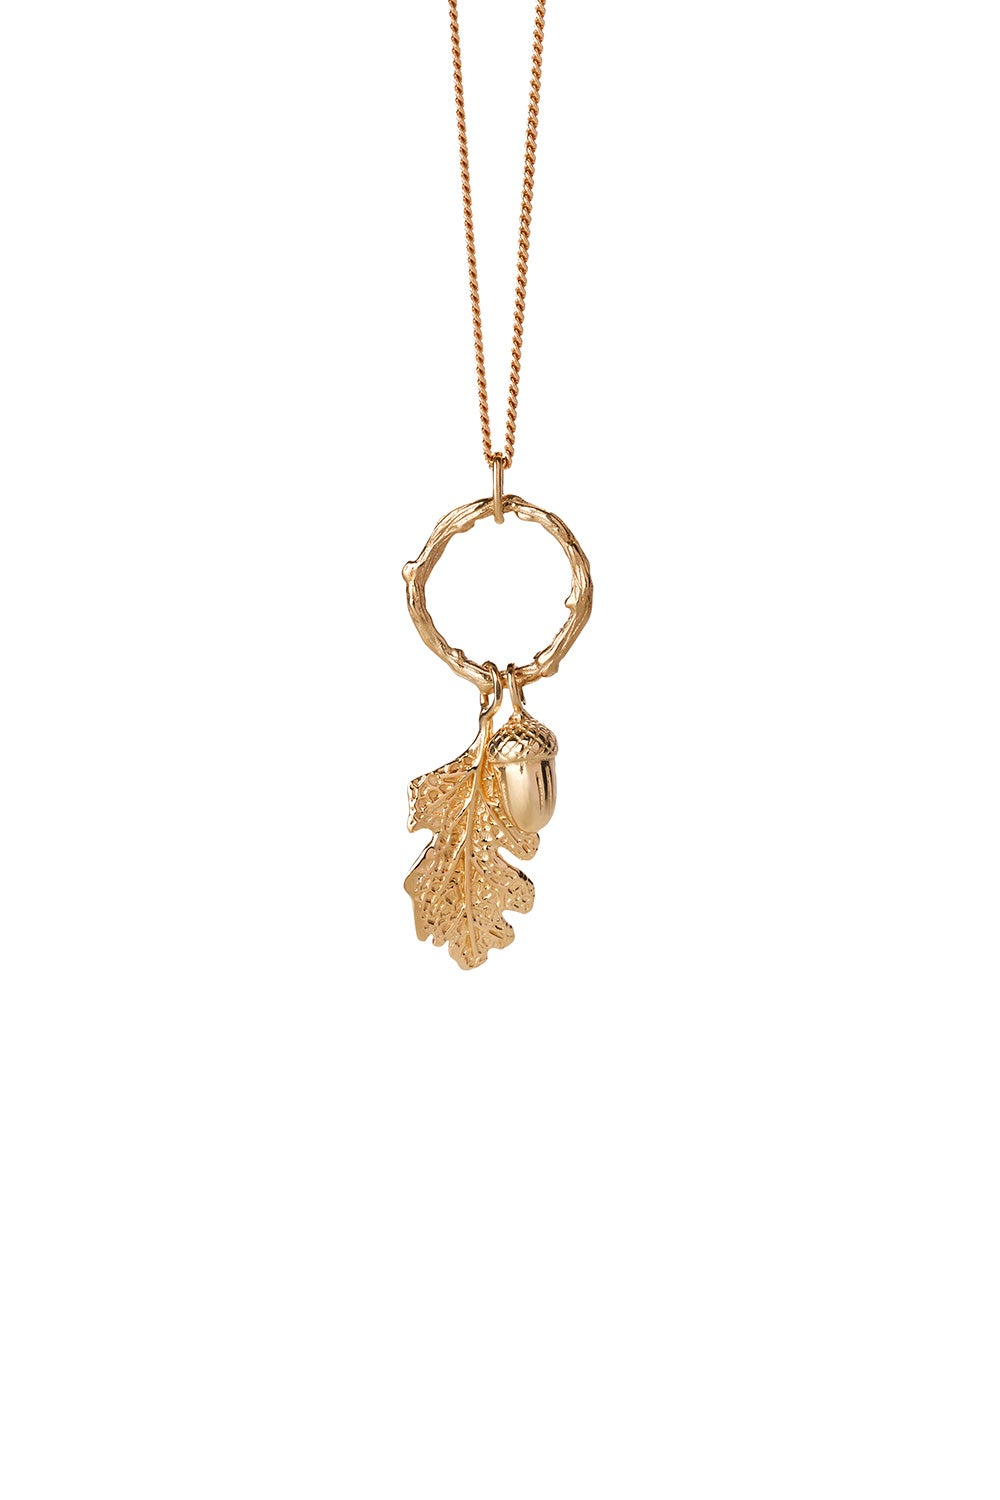 Acorn and Leaf Loop Necklace Gold